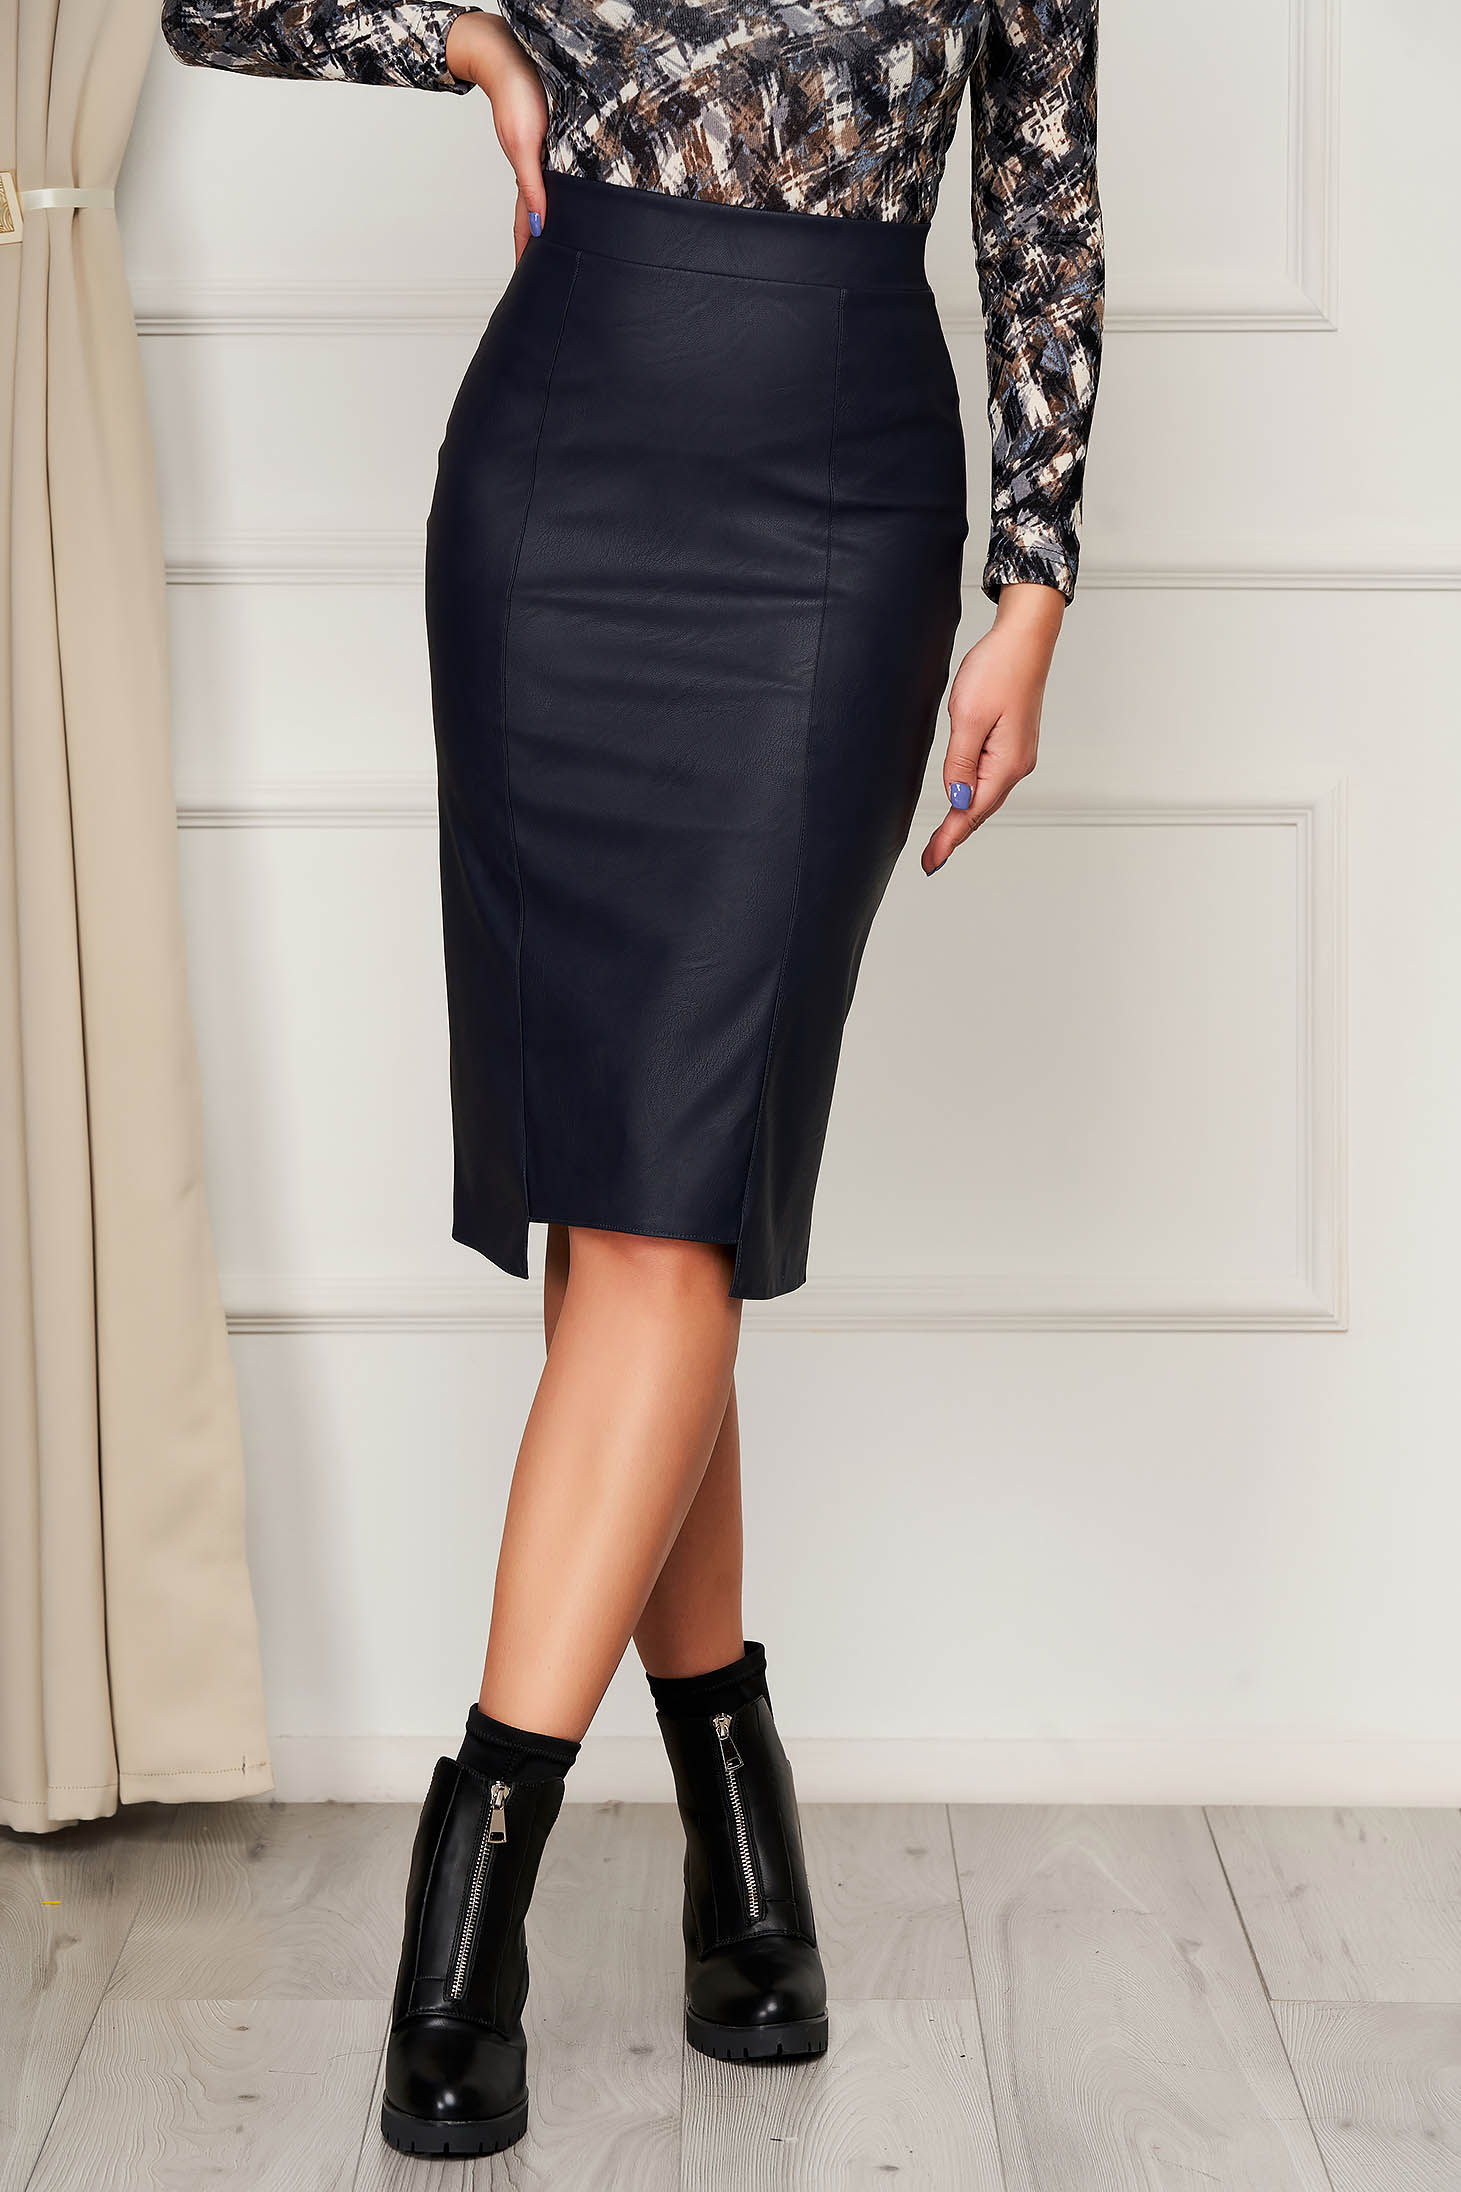 Skirt StarShinerS darkblue midi high waisted from ecological leather office